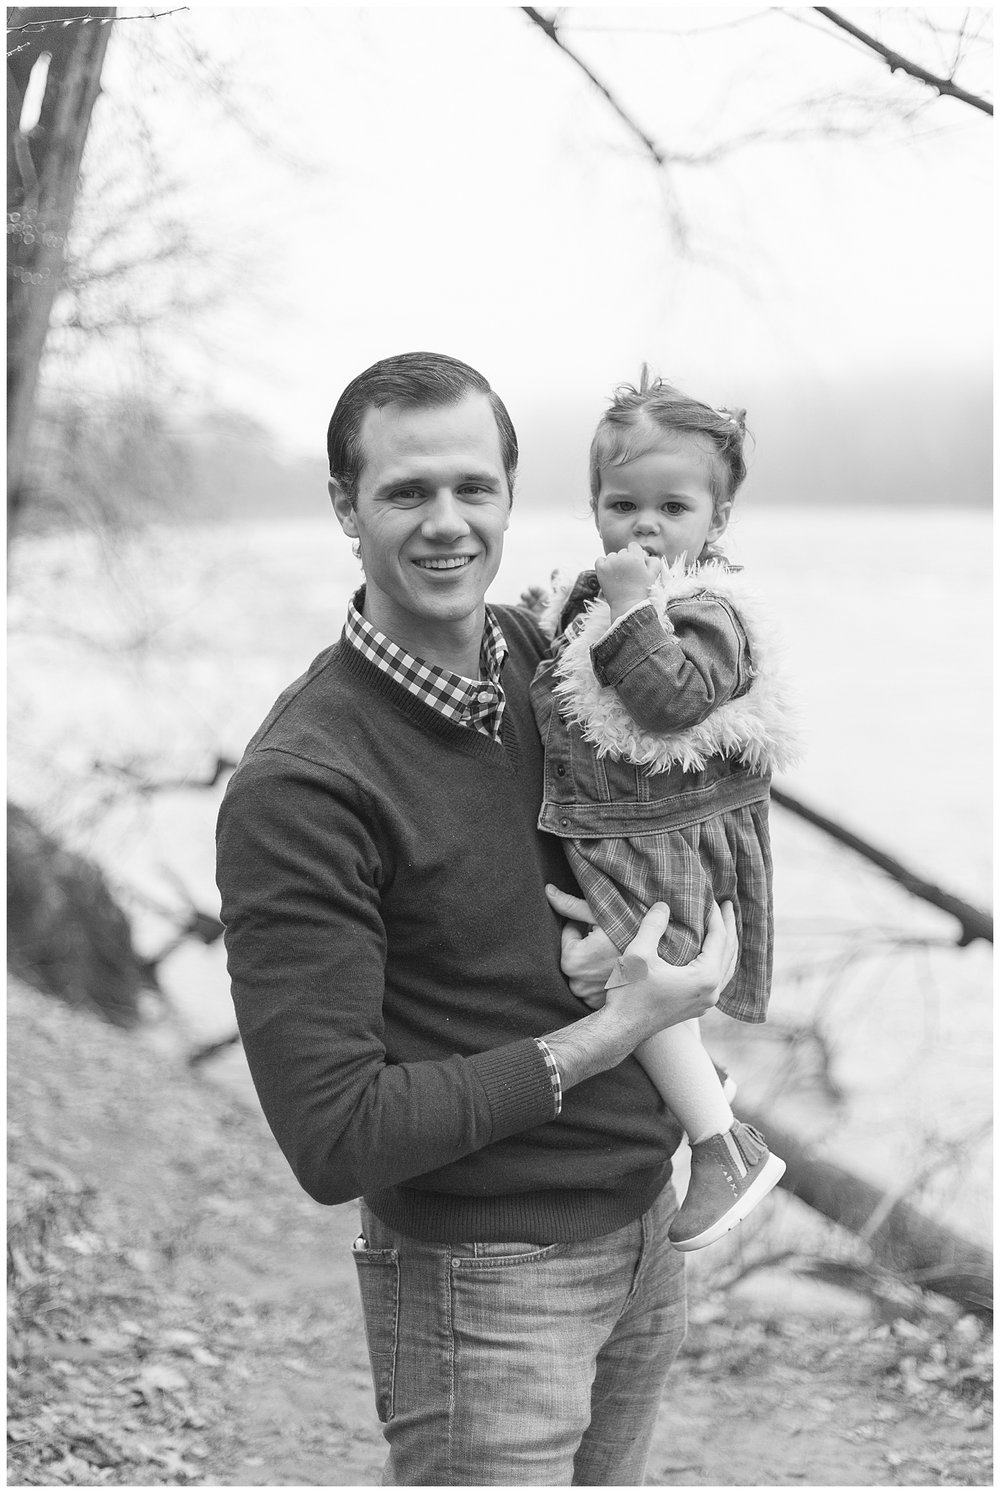 dc-fall-family-photos-emily-belson-photography-05.jpg